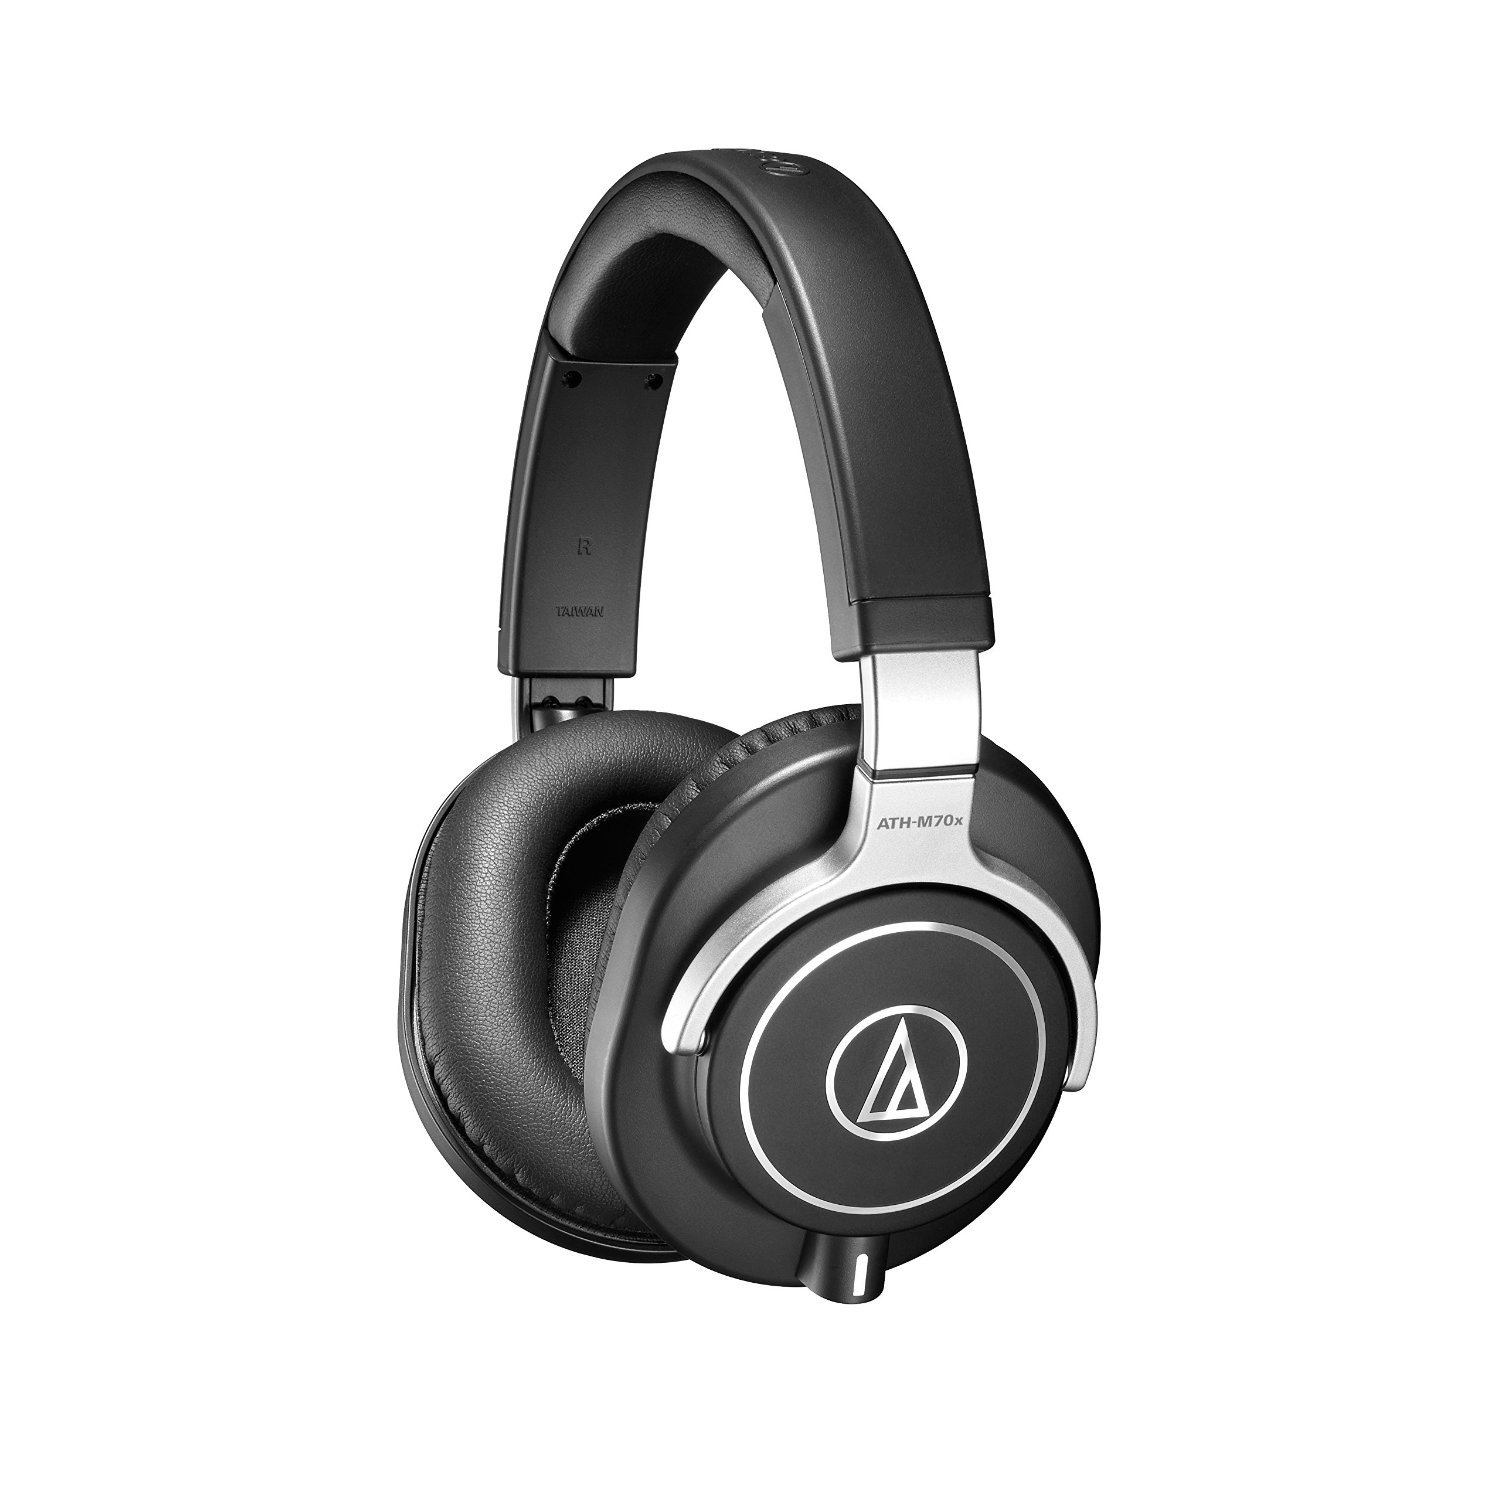 NEW 2015 Audio-technica Professional Monitor Headphones ATH-M70x from JAPAN F/S